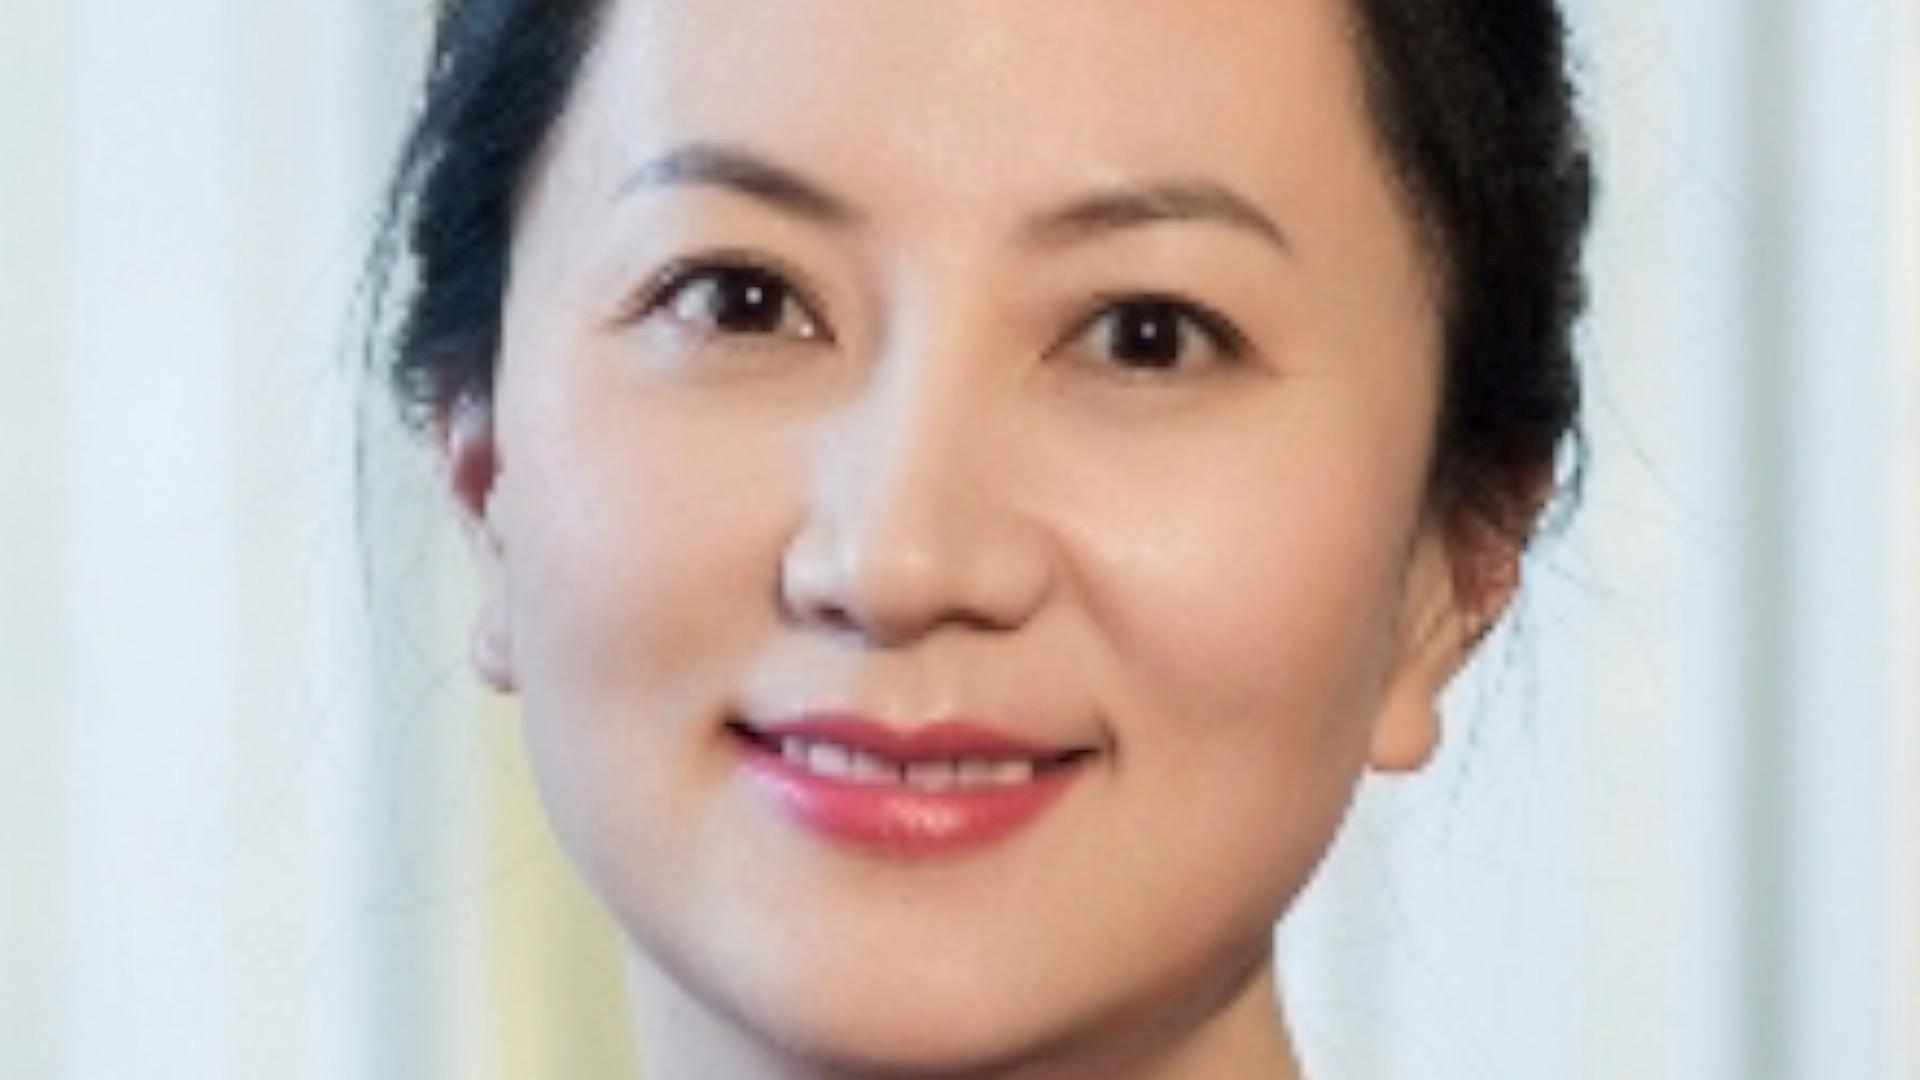 Politics - Canadian Judge Spells Out Bail Conditions For Huawei Executive